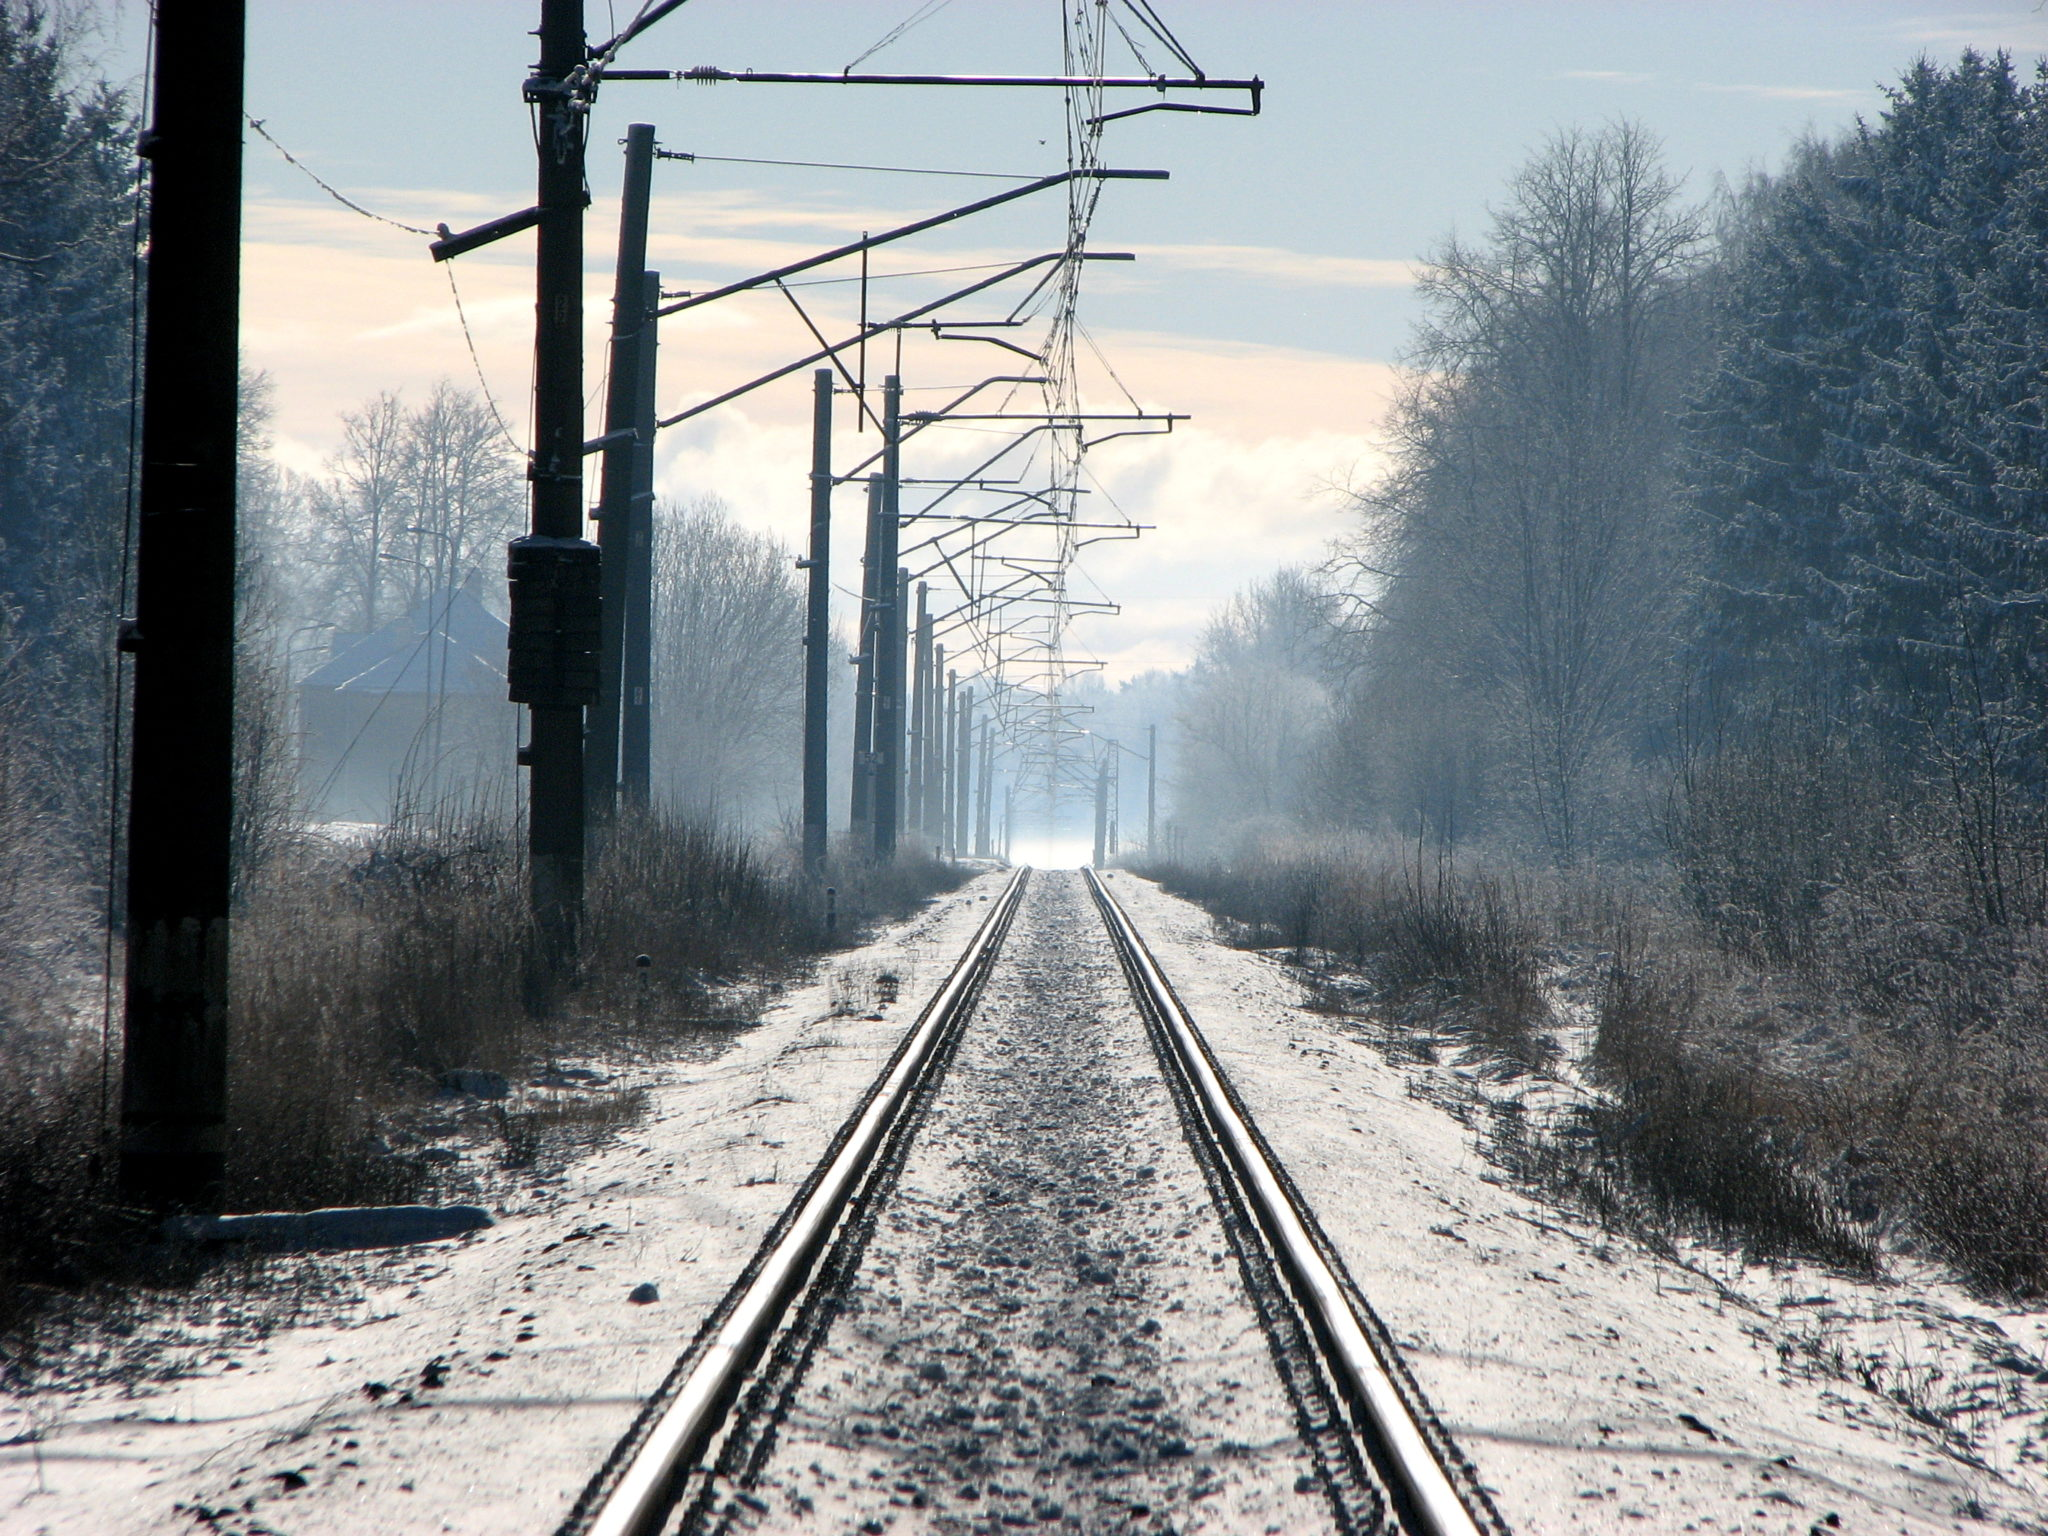 Electrified railway line in Latvia